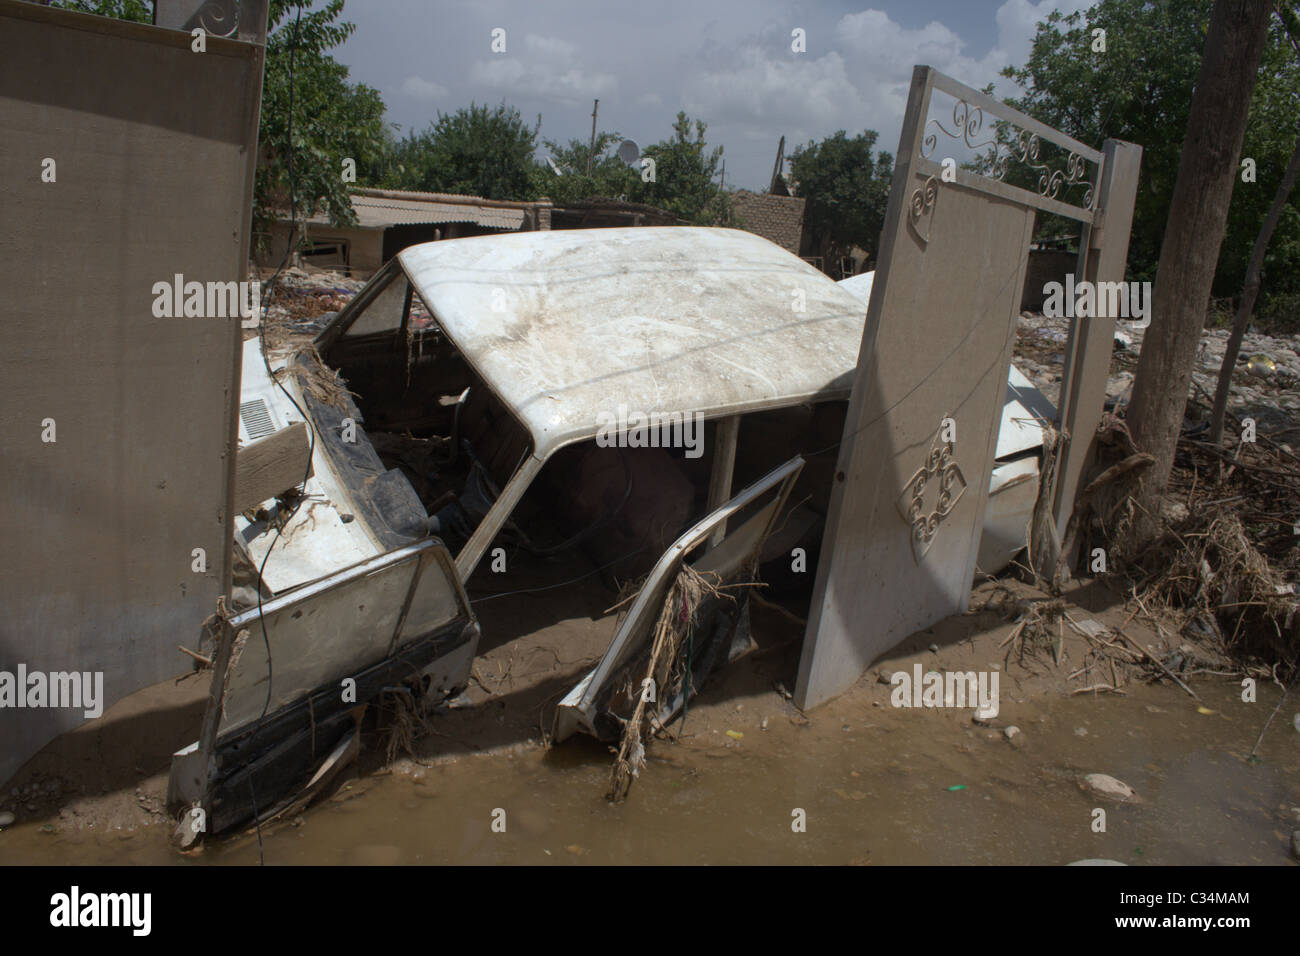 Car destroyed during the disaster in Kulyab, May 2010. - Stock Image